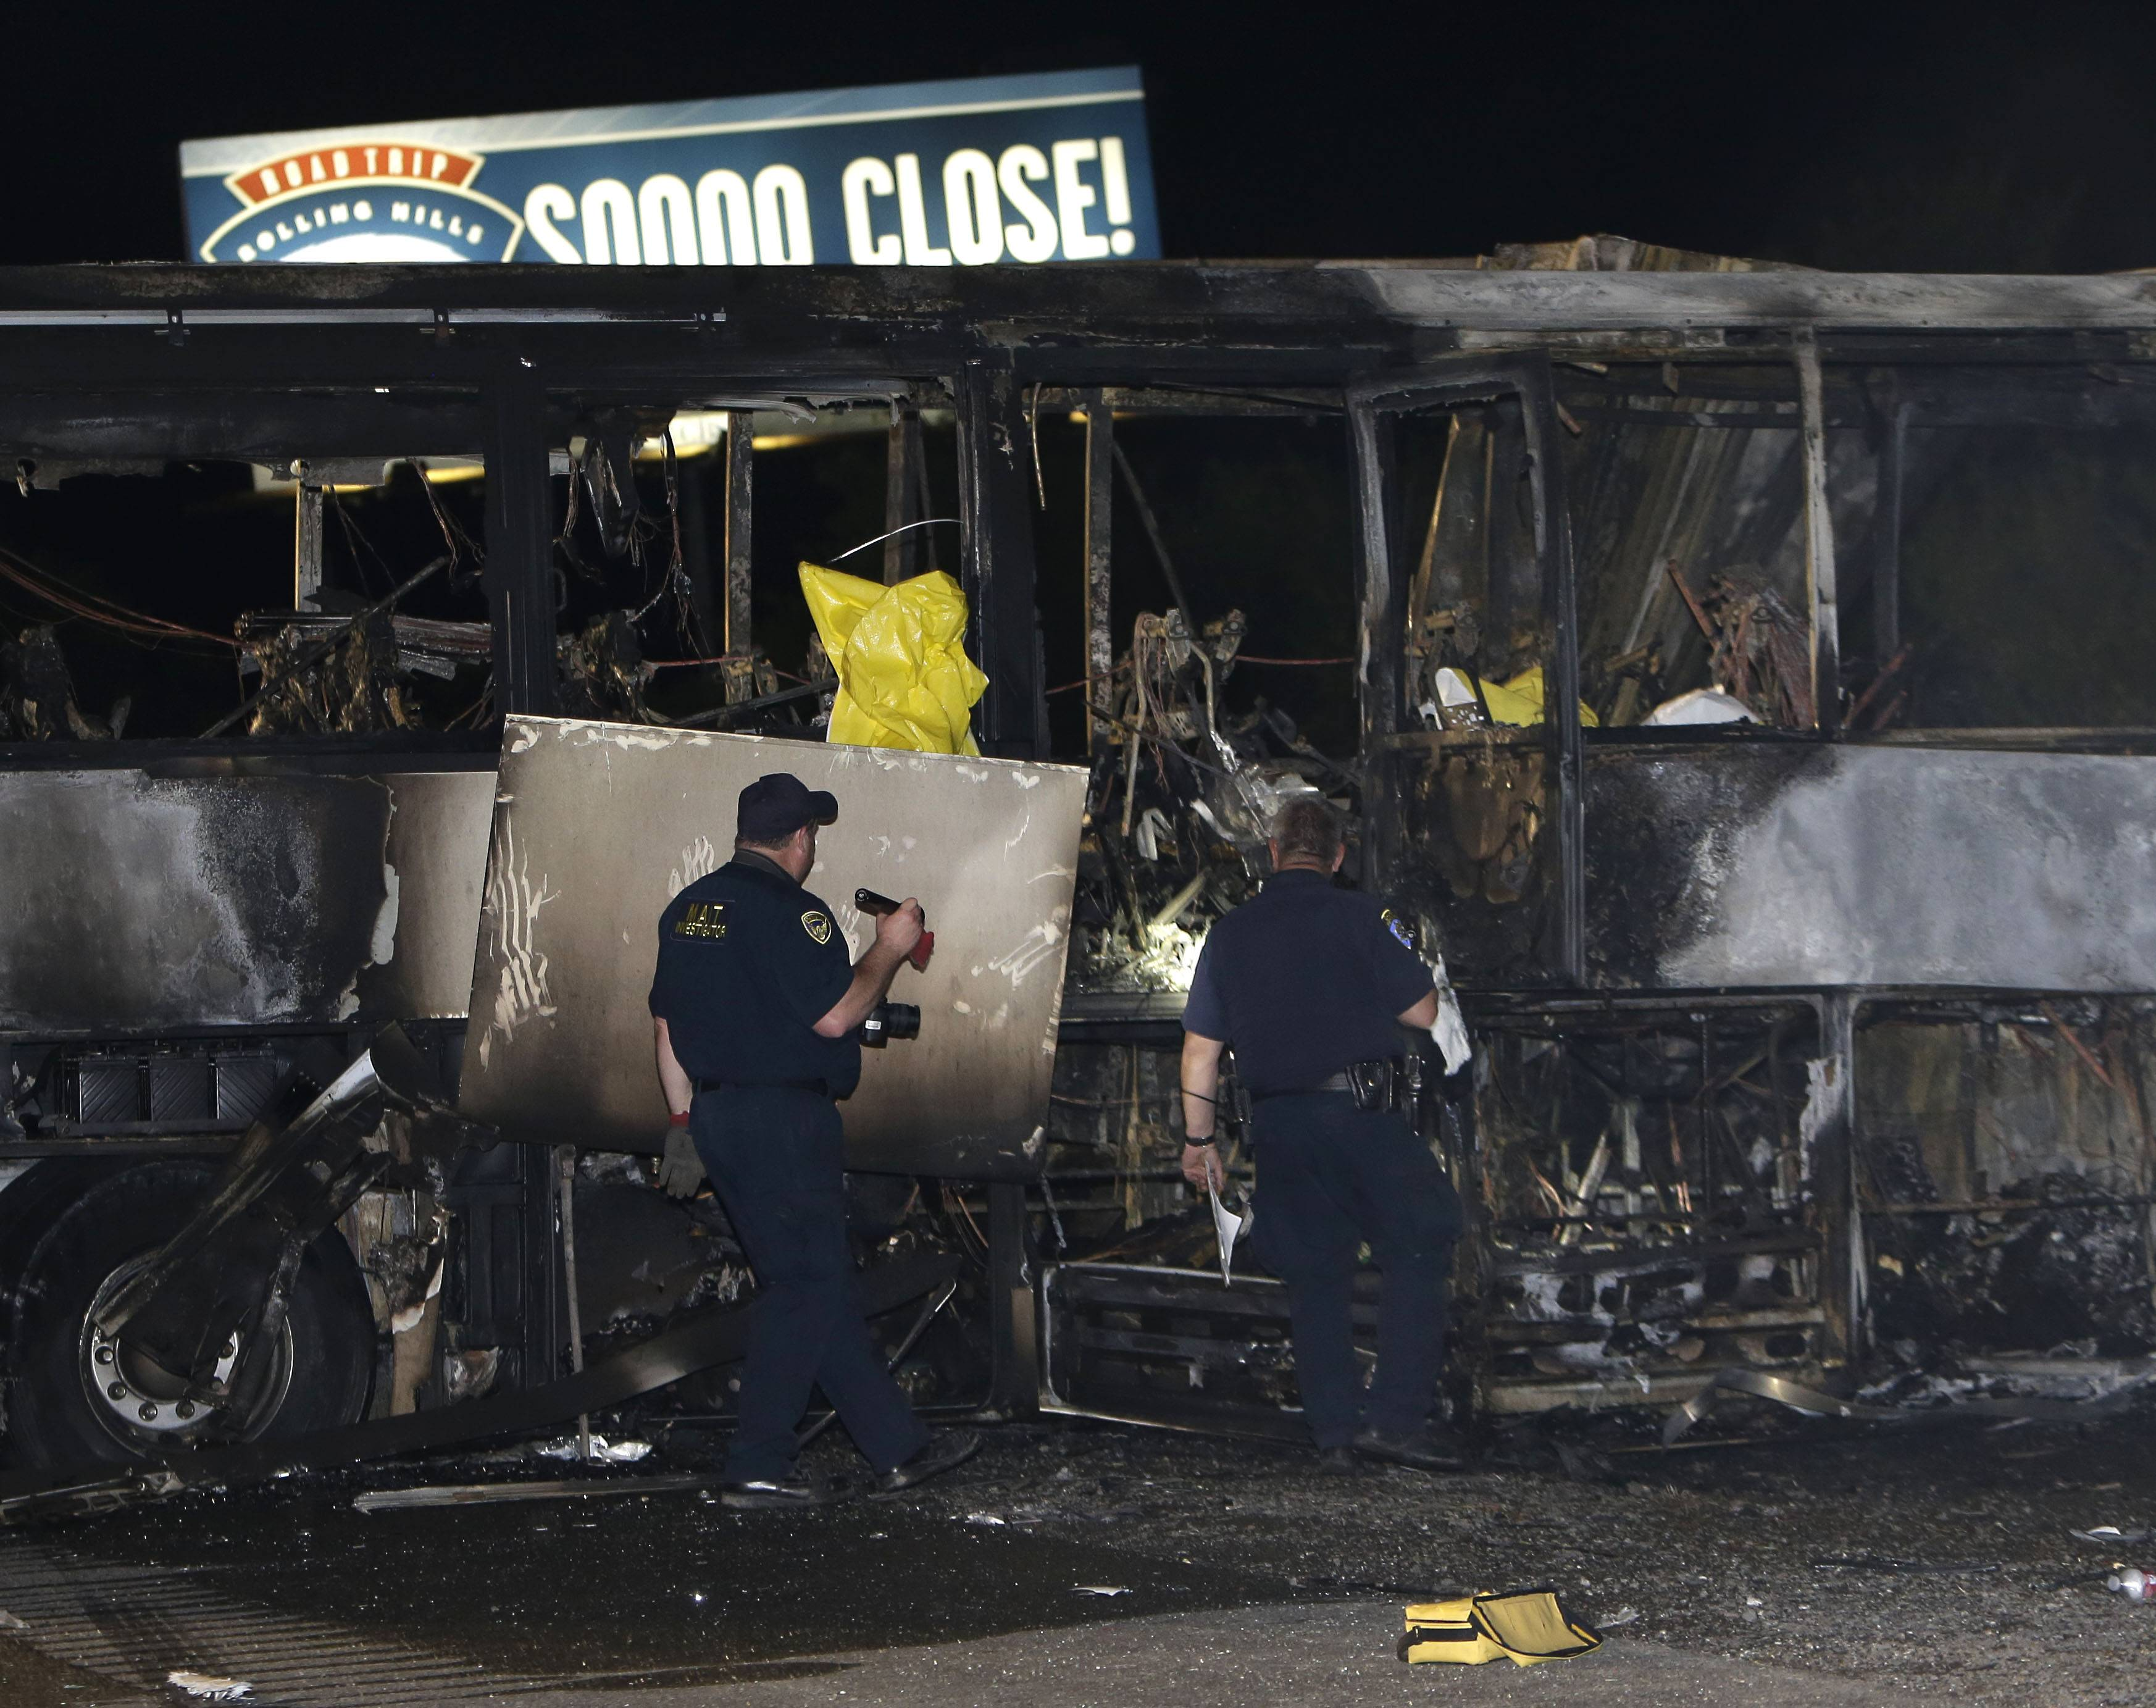 At least 10 people were killed and dozens injured in a fiery crash between a tour bus and a FedEx truck on Interstate 5 Thursday. The bus was carrying high school students on a visit to a Northern California college.